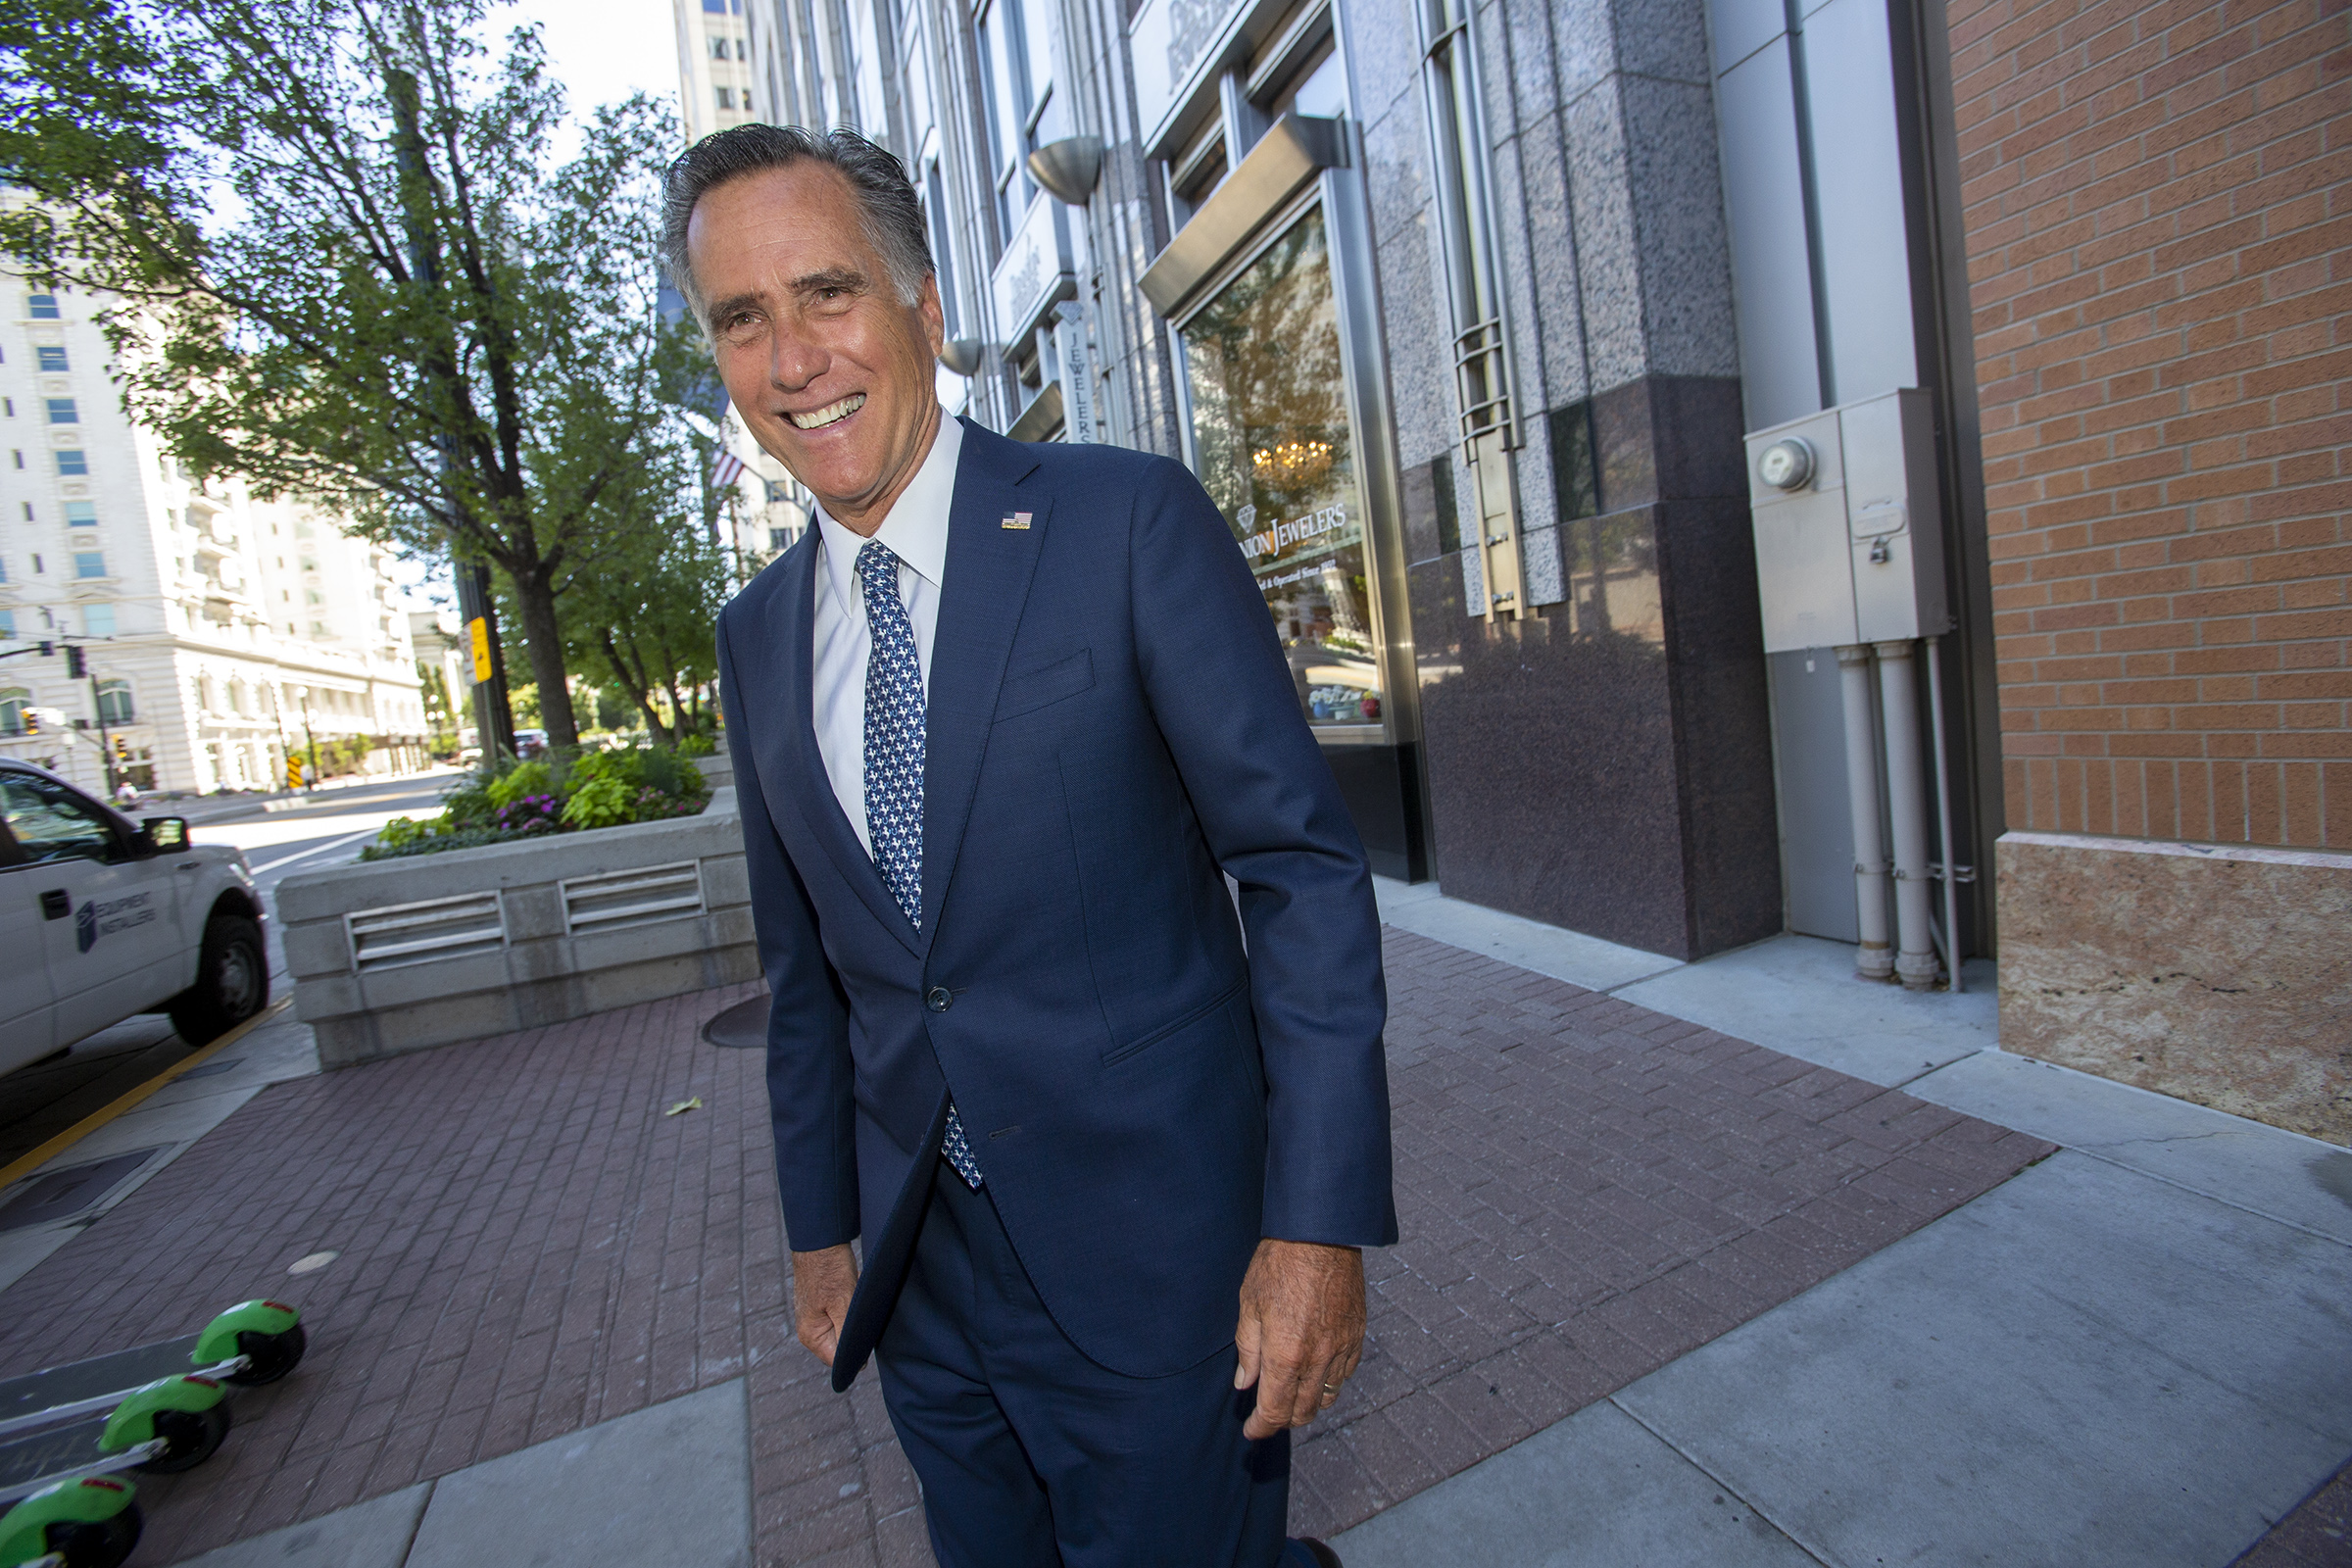 FILE - Sen. Mitt Romney, R-Utah, leaves after speaking at the Sutherland Institute in Salt Lake City on Monday, Aug. 19, 2019.